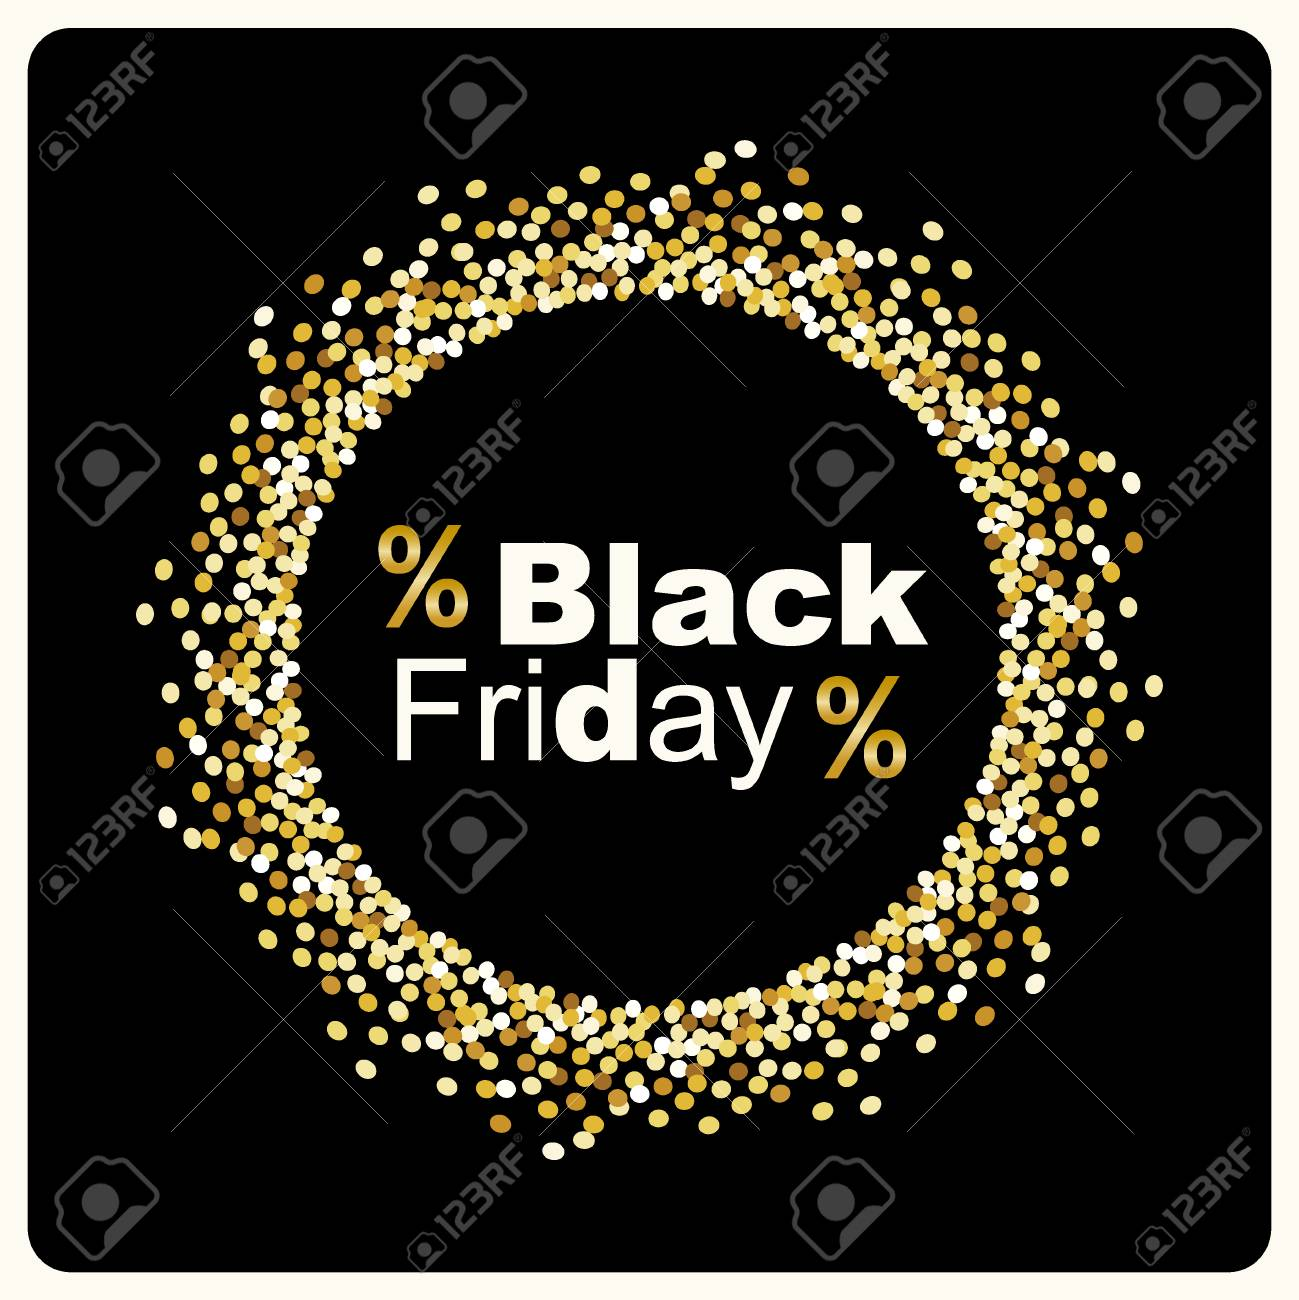 Luxury Black Friday Background With Gold Glitter Confetti Frame Royalty Free Cliparts Vectors And Stock Illustration Image 88329597